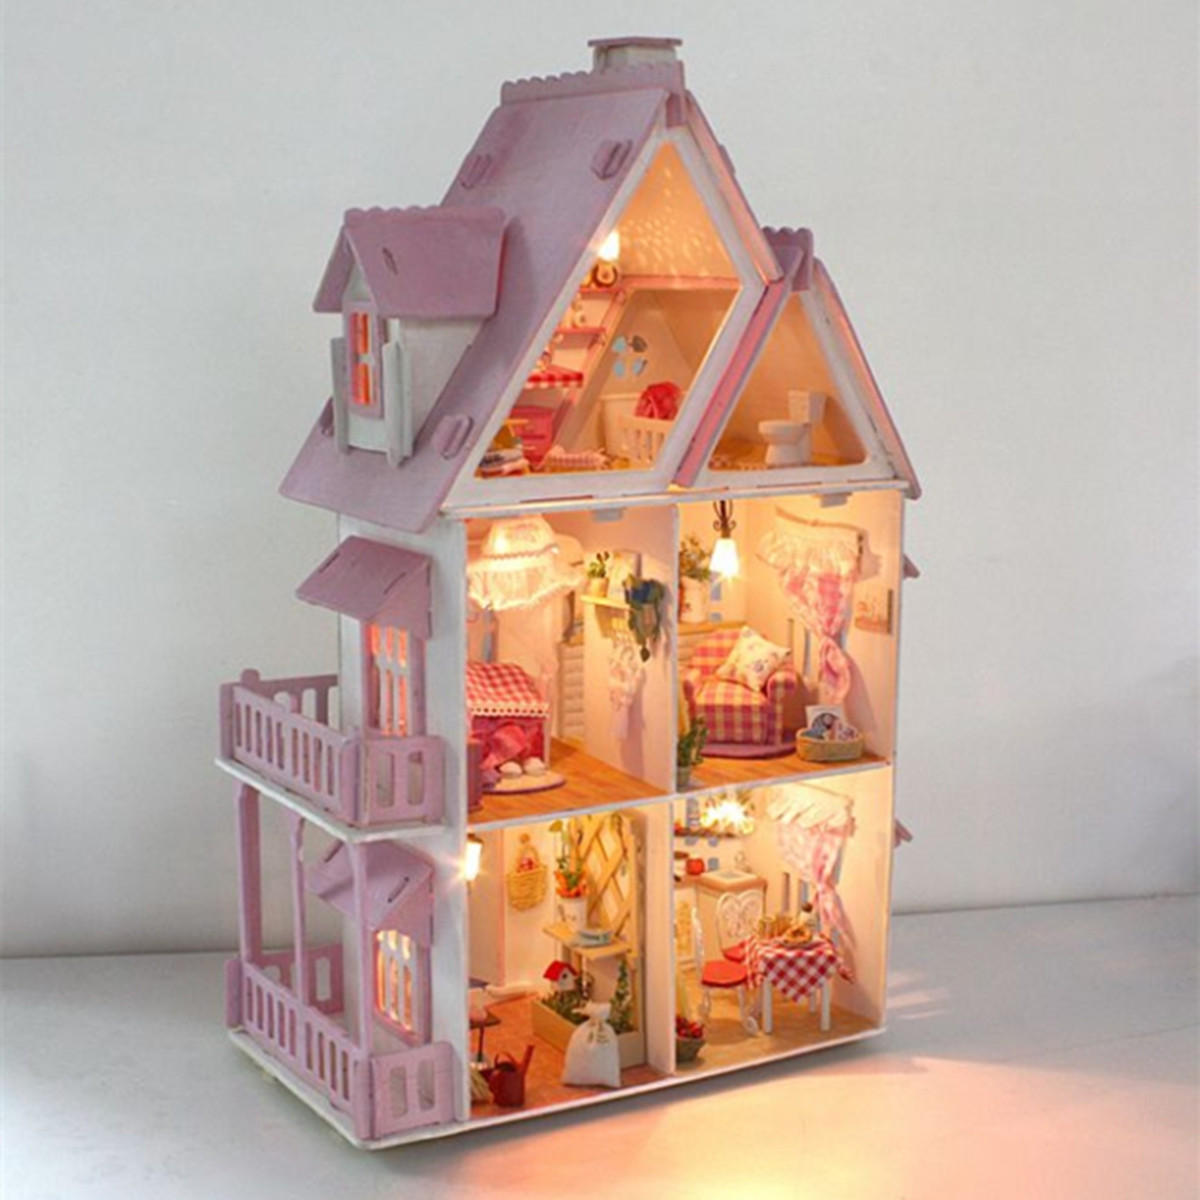 Large Wooden Kids Doll House Barbie Kit Girls Play Dollhouse